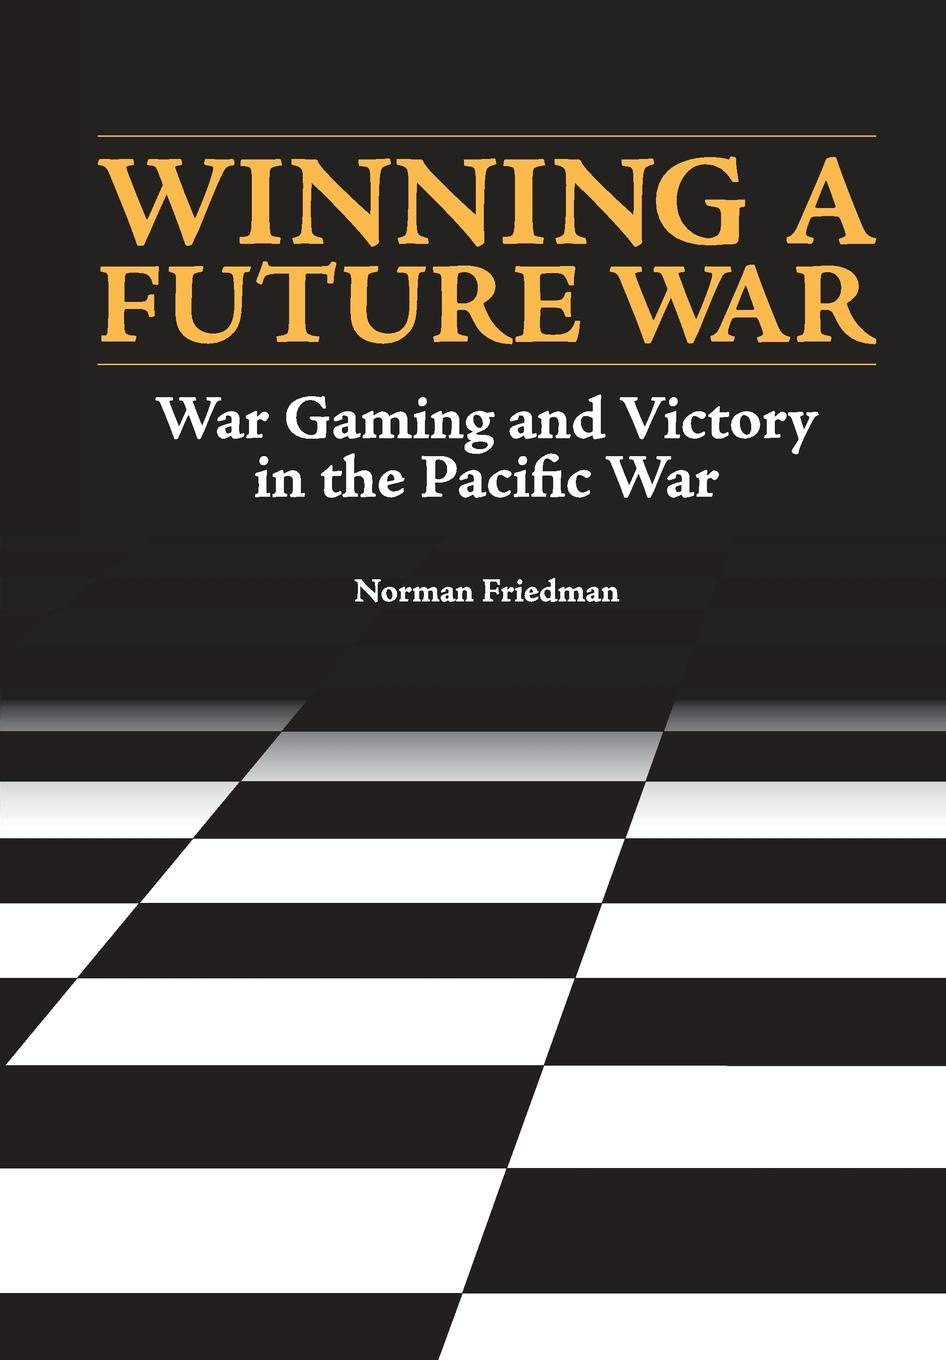 Фото - Norman Friedman, Naval History and Heritage Command, U.S. Department of the Navy Winning a Future War. War Gaming and Victory in the Pacific active cut out elastic vest in navy